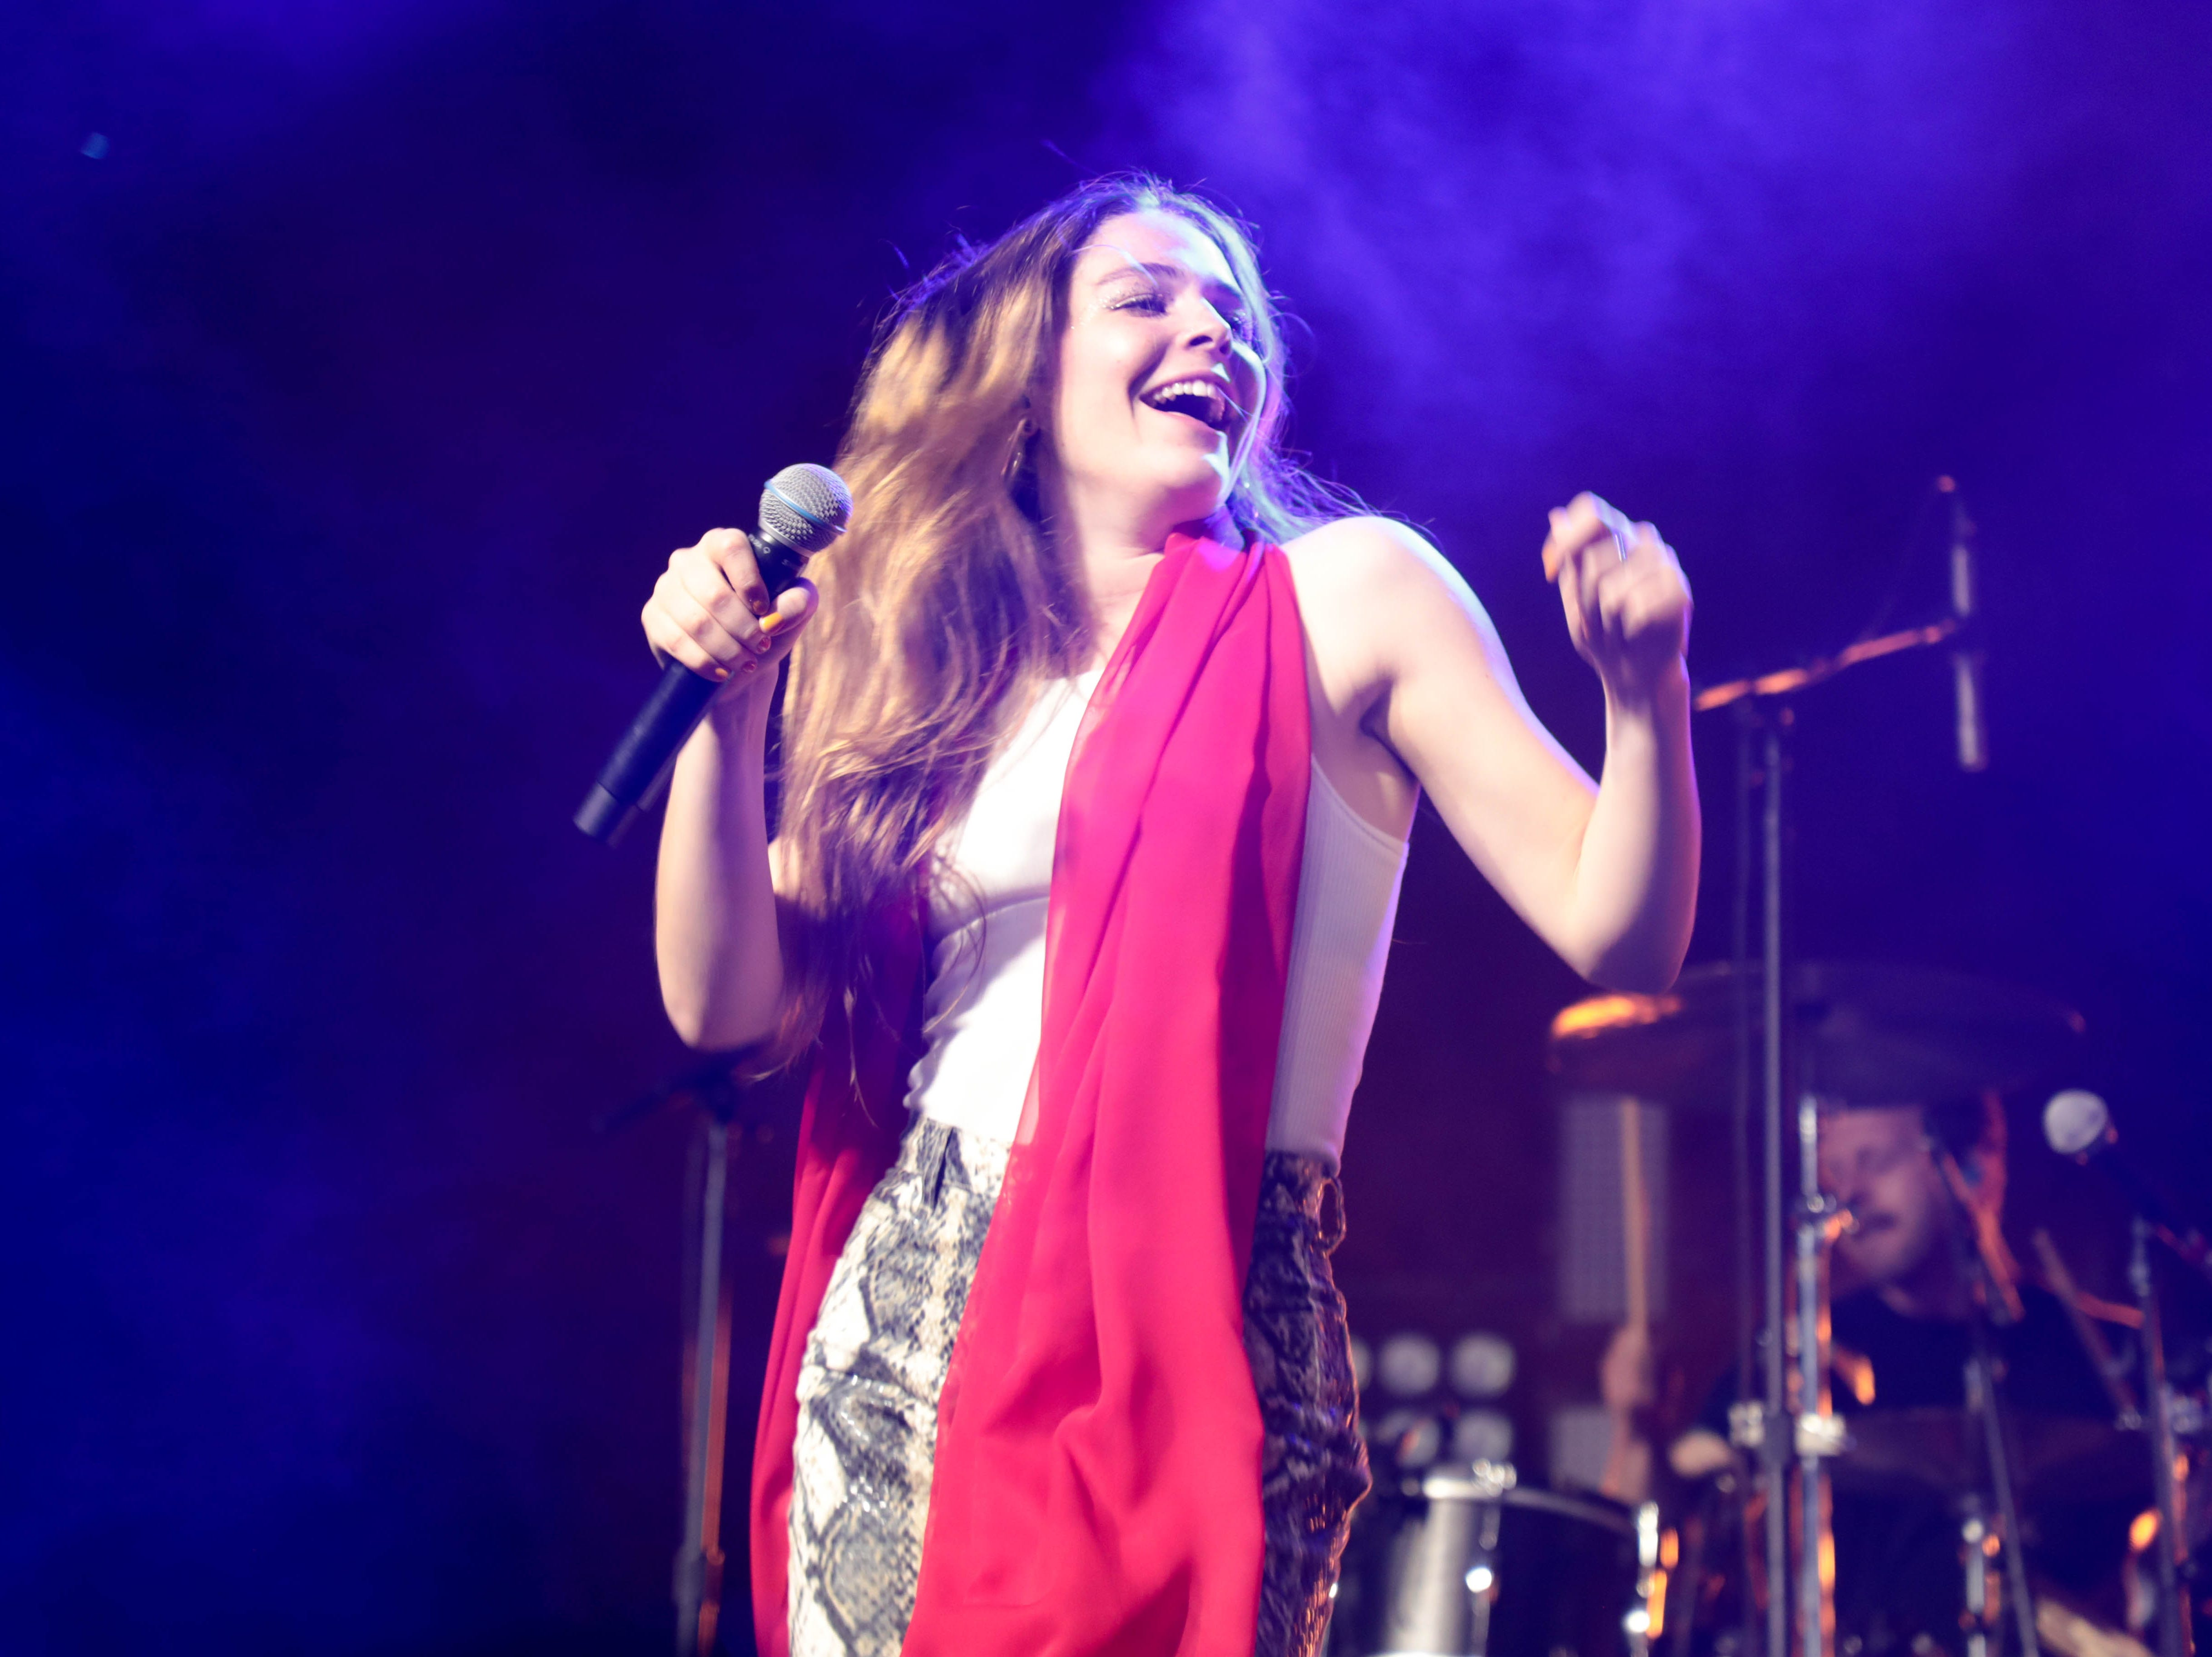 Maggie Rogers performs on Saturday, April 13, 2019 at Coachella Valley Music and Arts Festival in Indio, Calif.